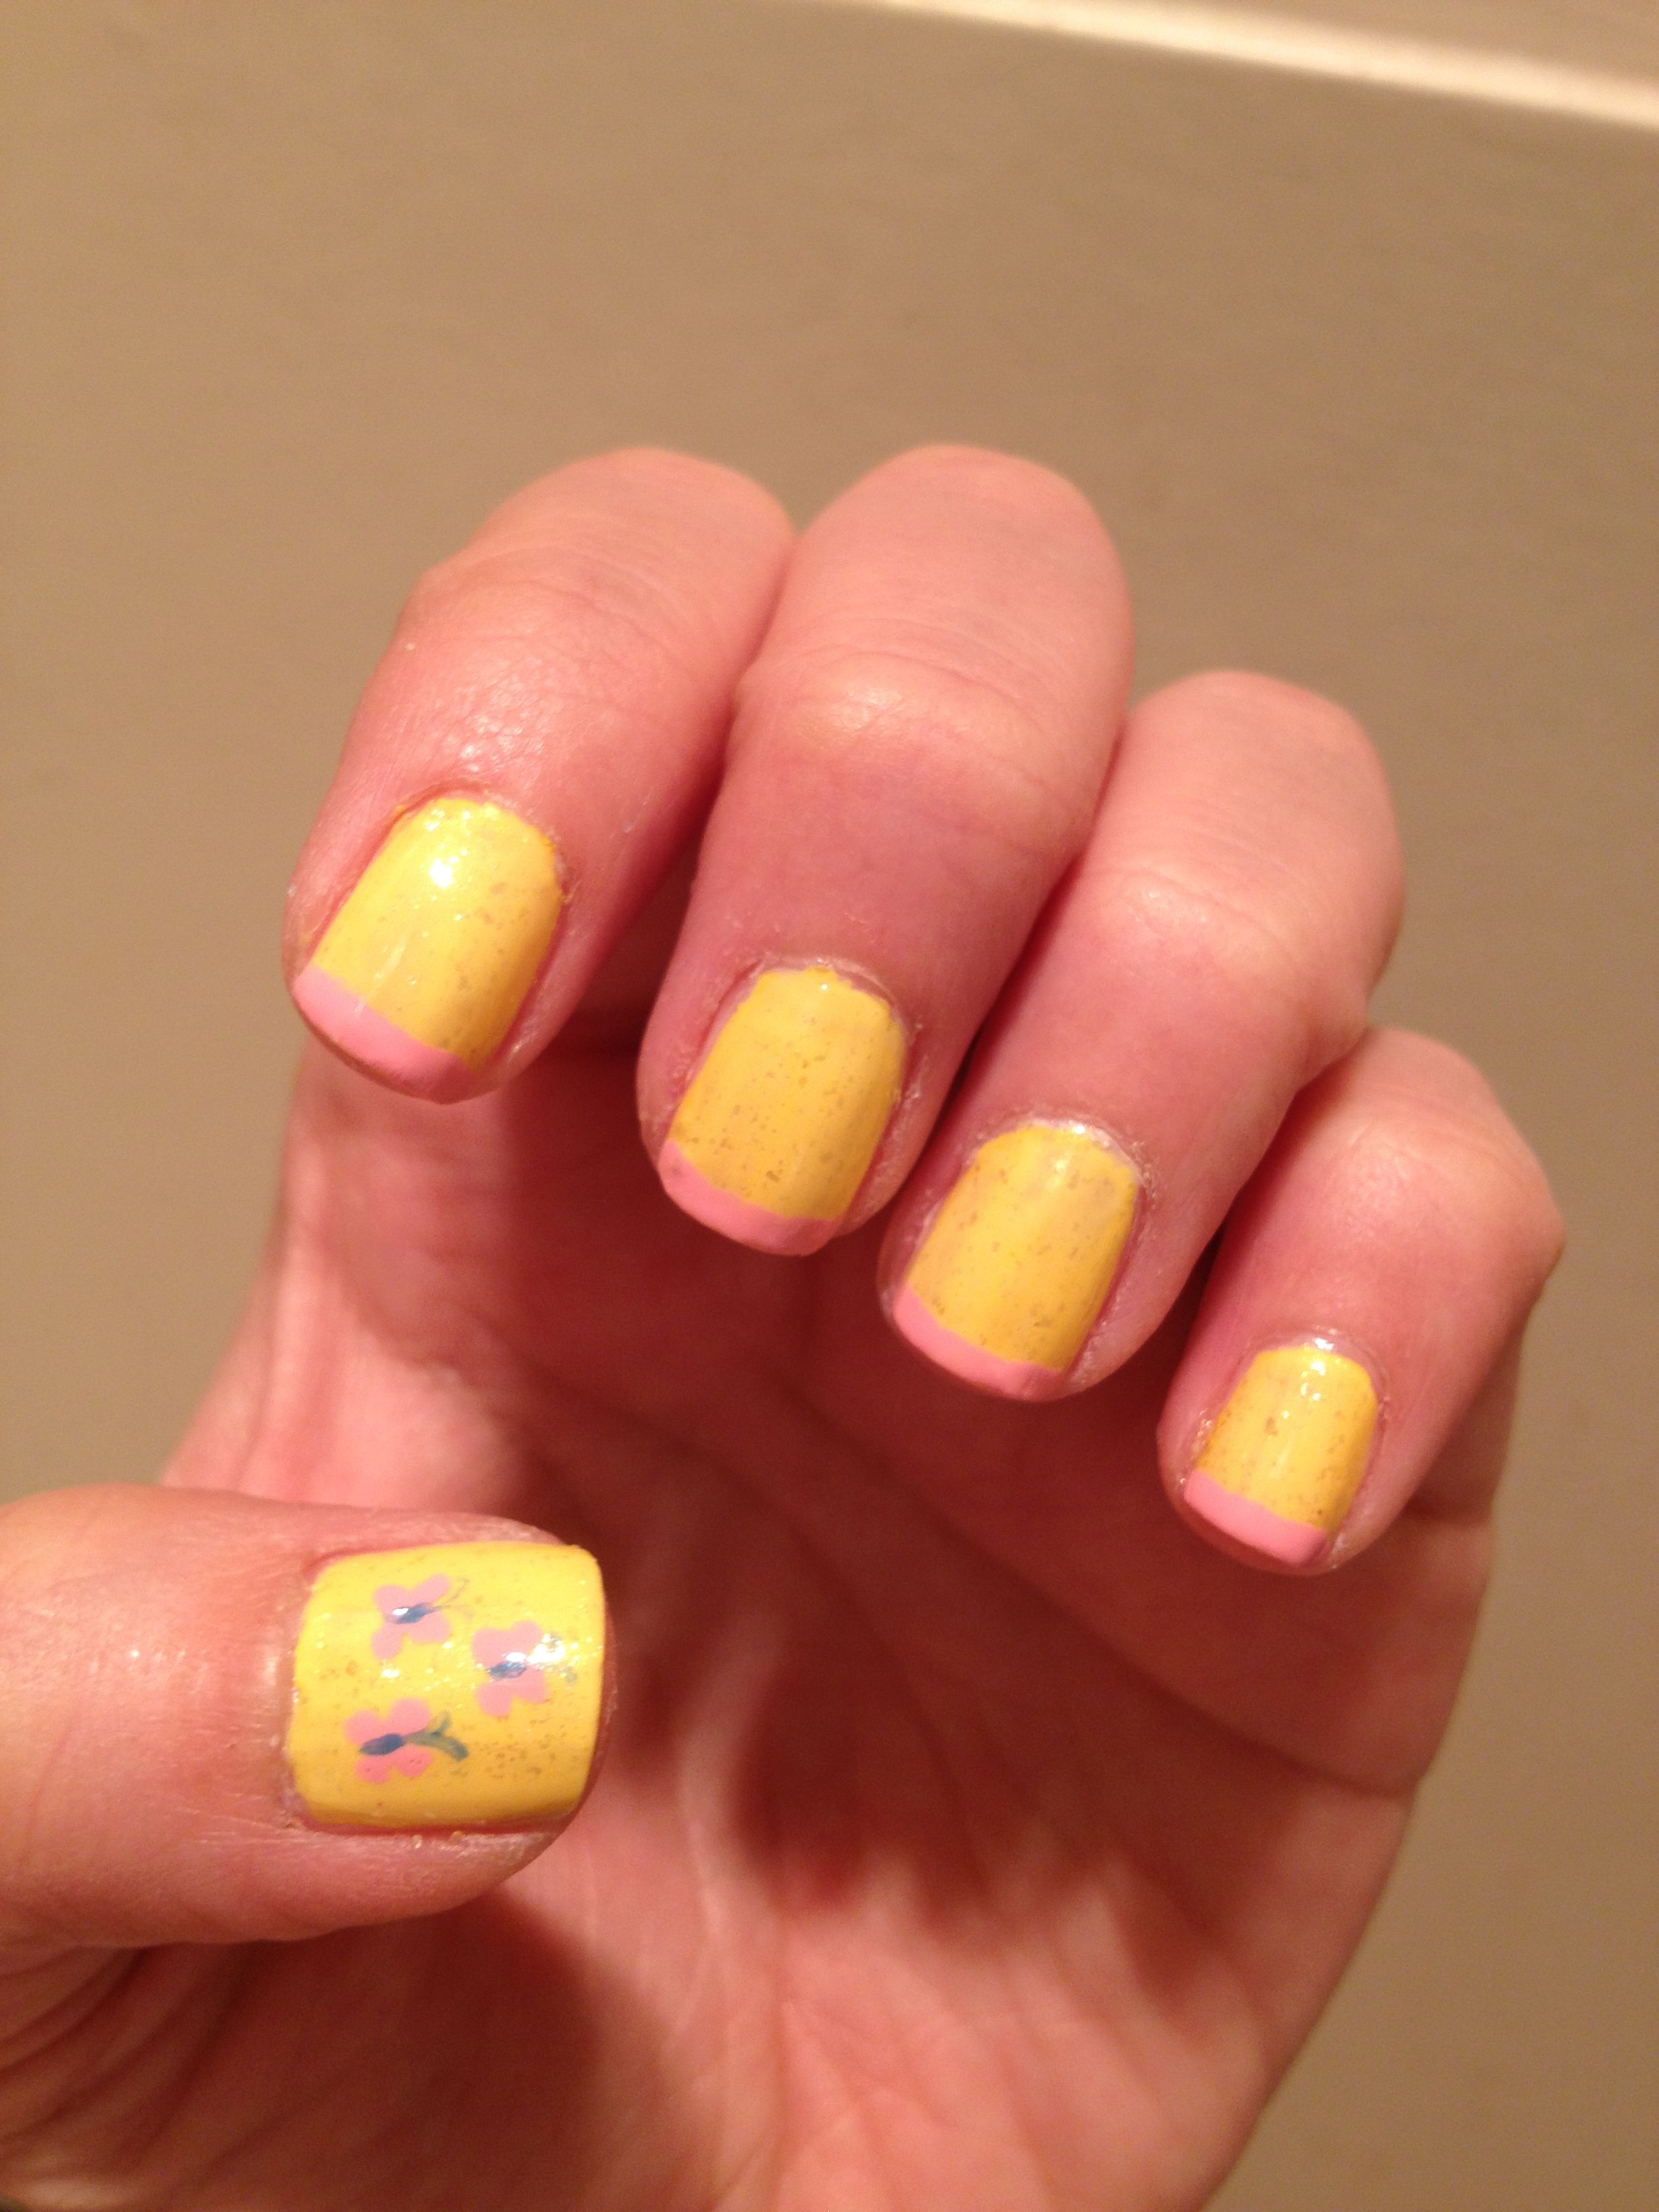 Mlp flutterfly yellow, opi pink Friday, Essie As Gold As it gets ...